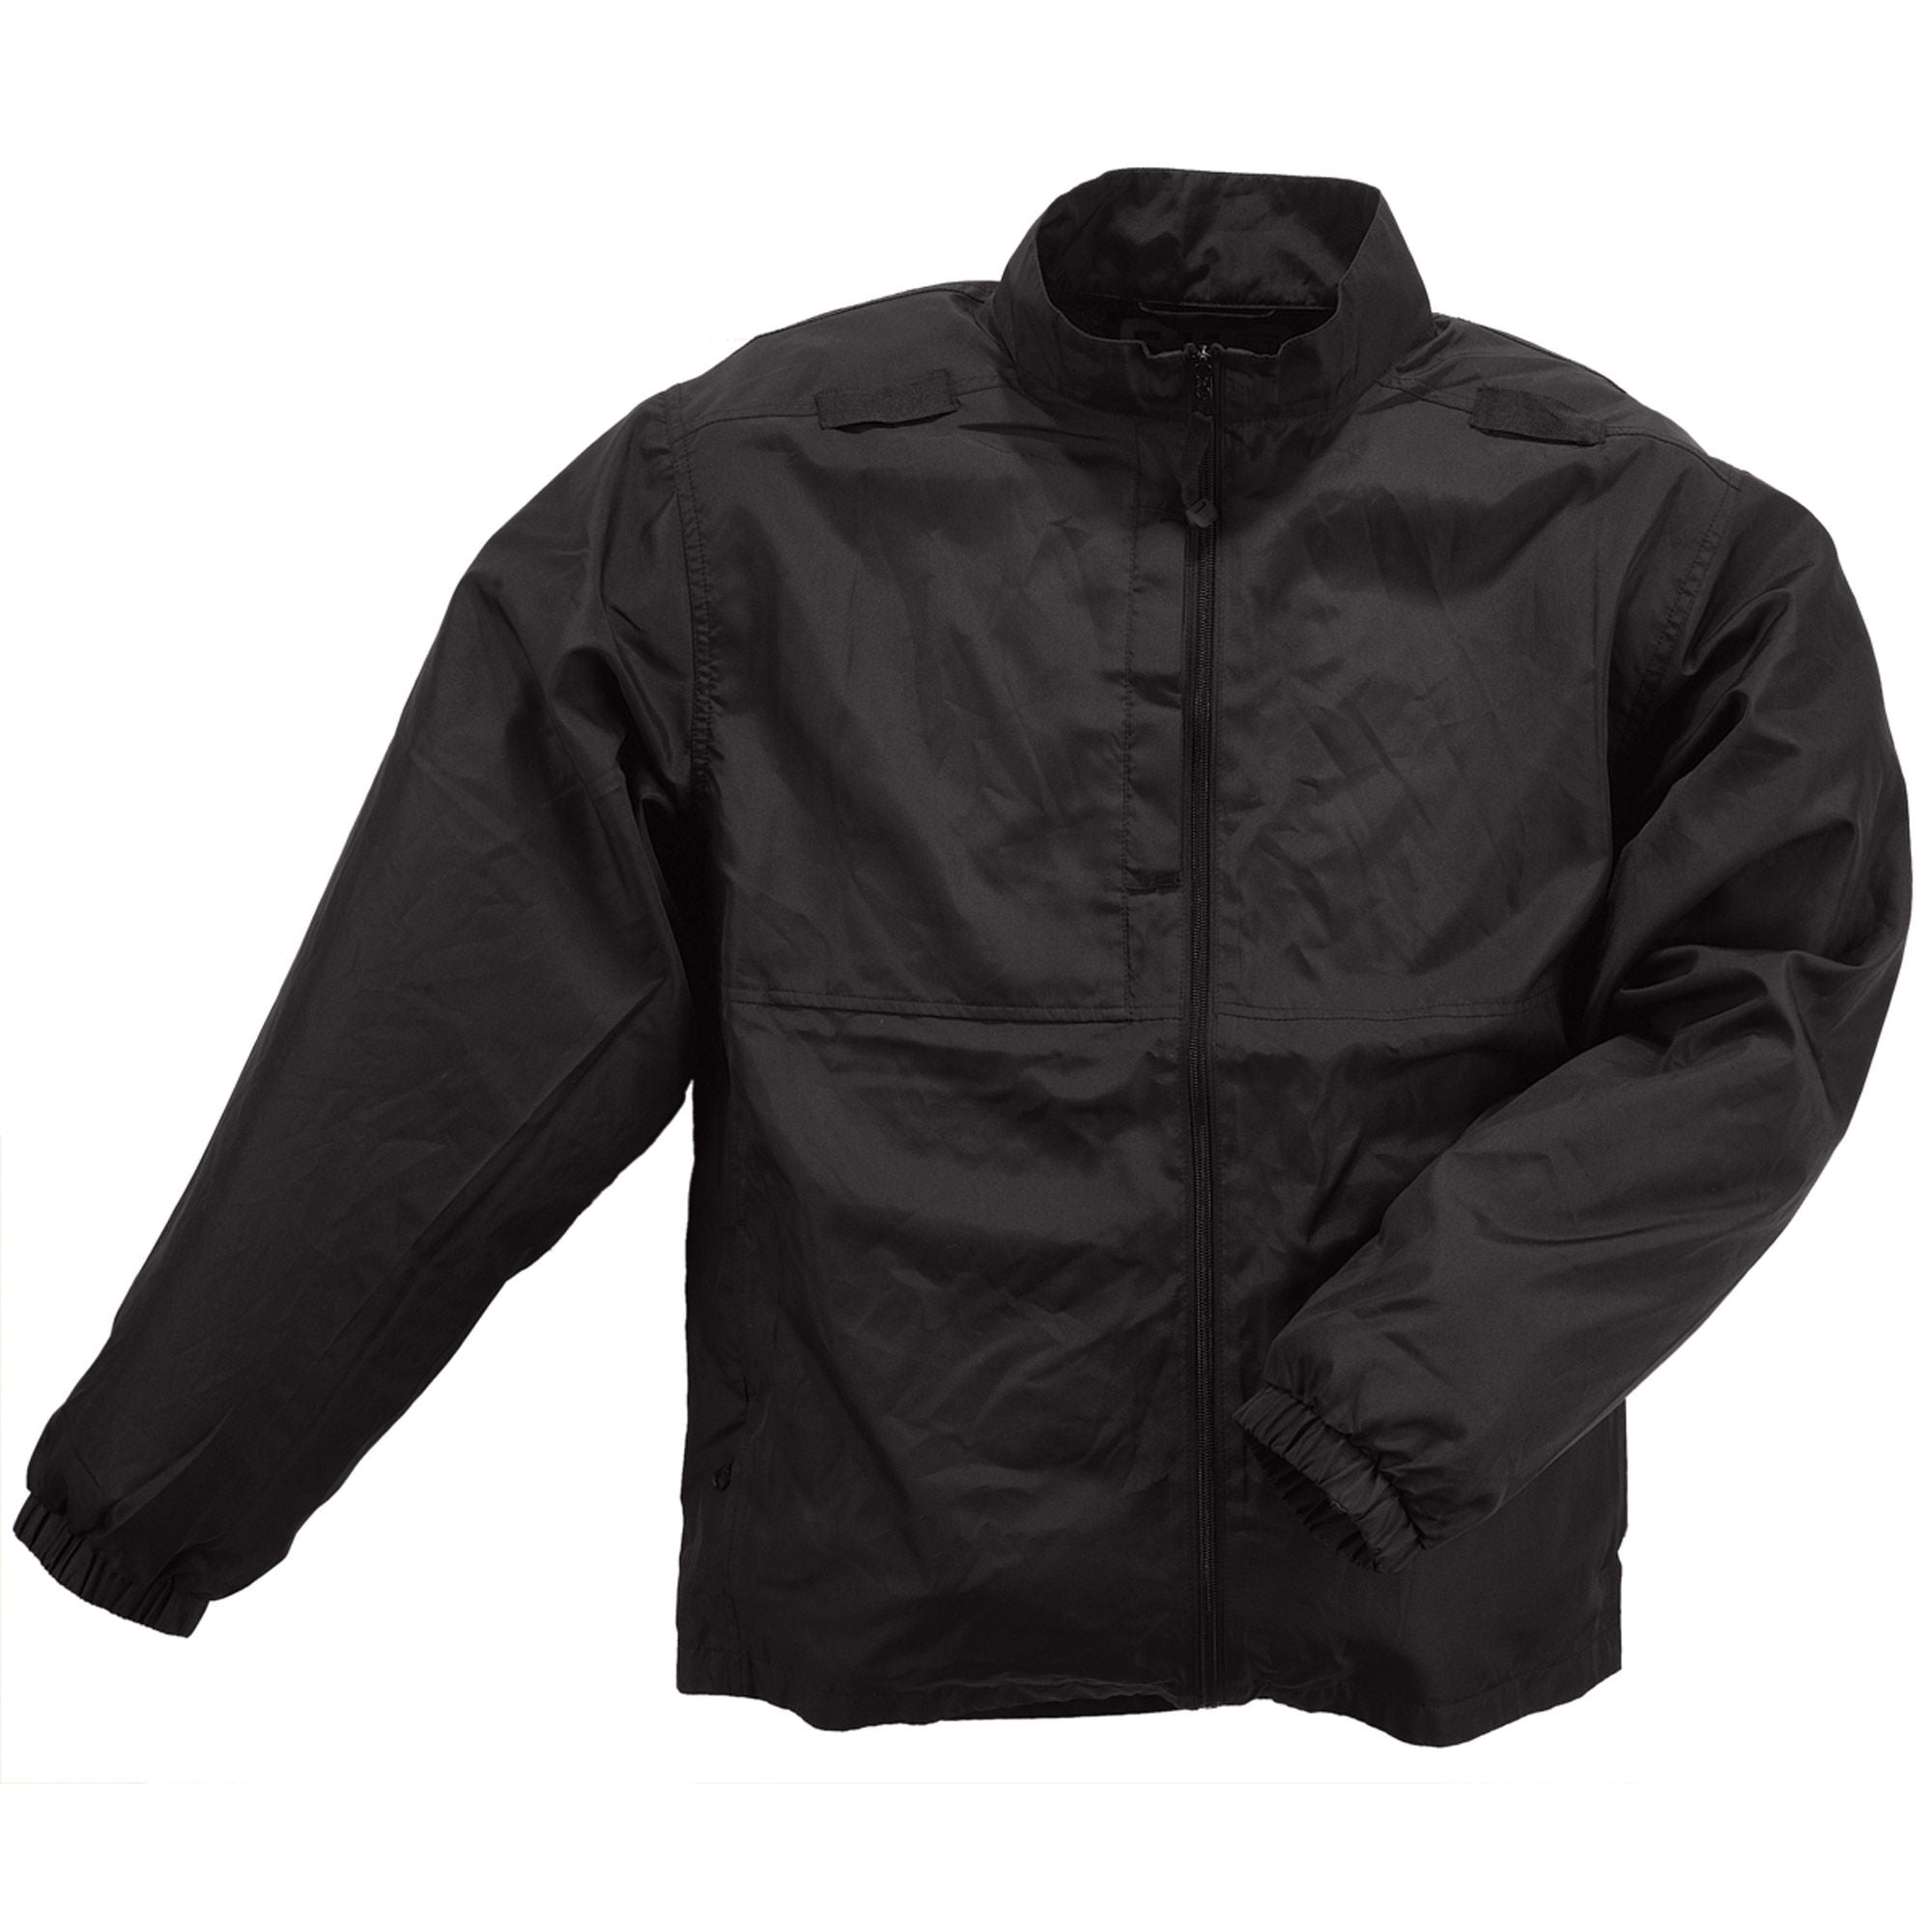 5.11 Lightweight Tactical Packable Jacket